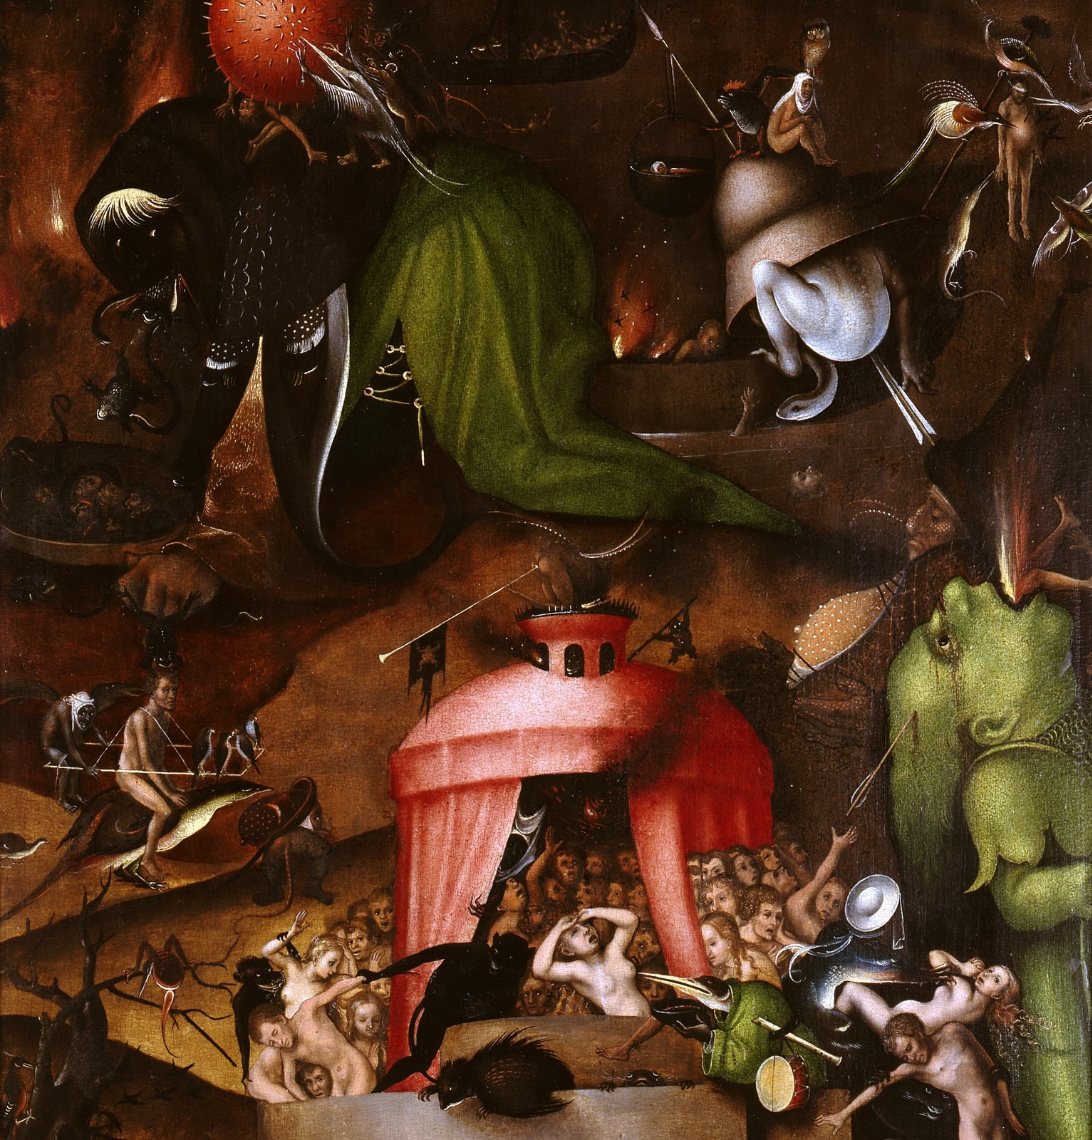 Lucas Cranach the Elder. Altar. The Last Judgment (by Jerome Bosch) right panel Hell Picture Gallery of Old Masters, Berlin detail